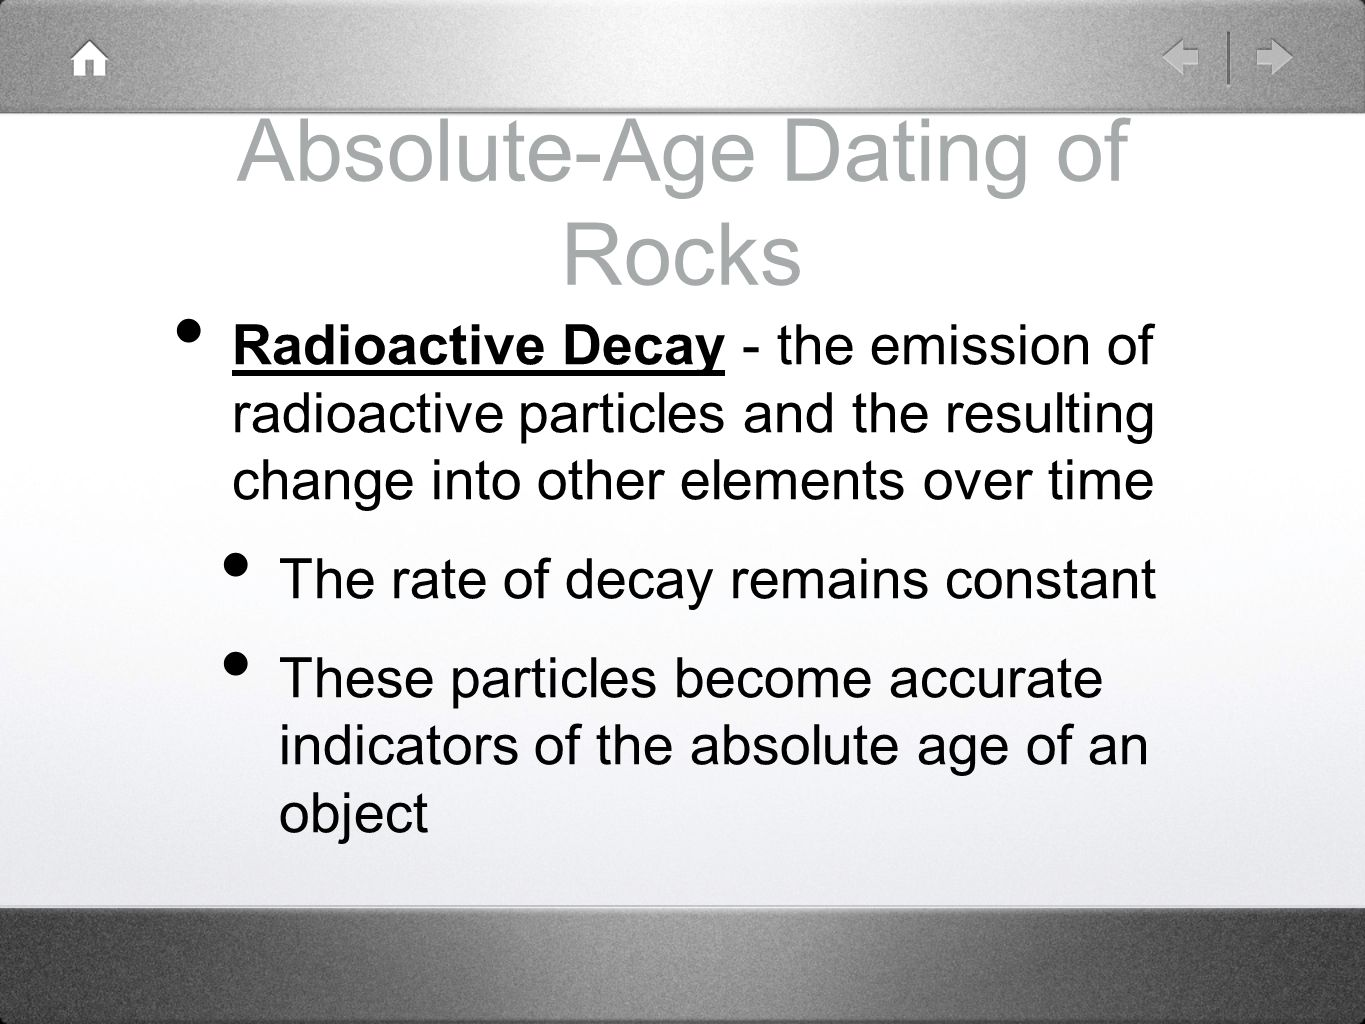 Relative vs absolute age dating of rocks